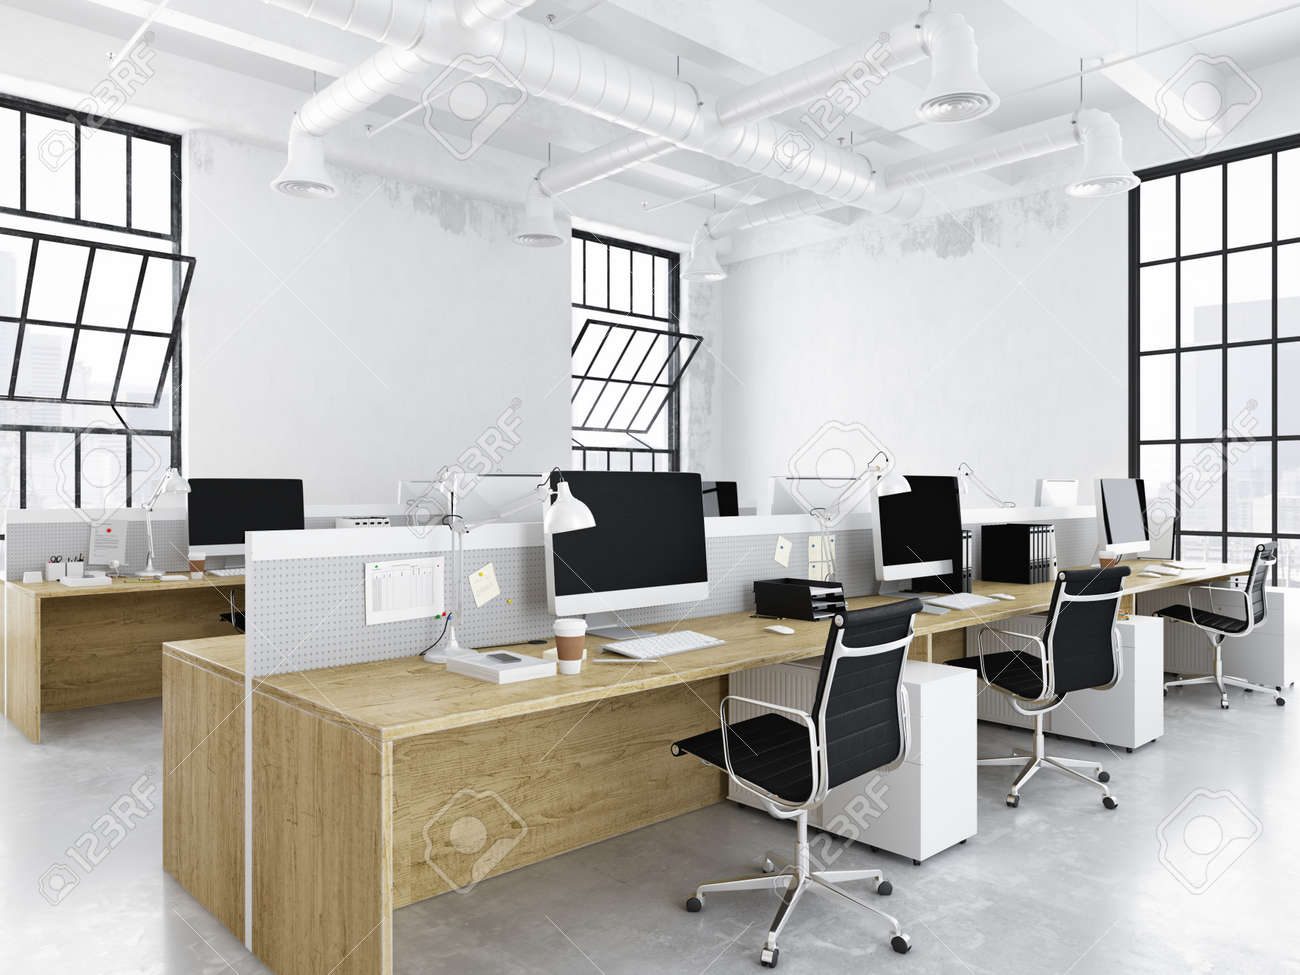 Modern Office With Creative Spaces. 3d Rendering Stock Photo, Picture And Royalty Free Image. Image 79660786.